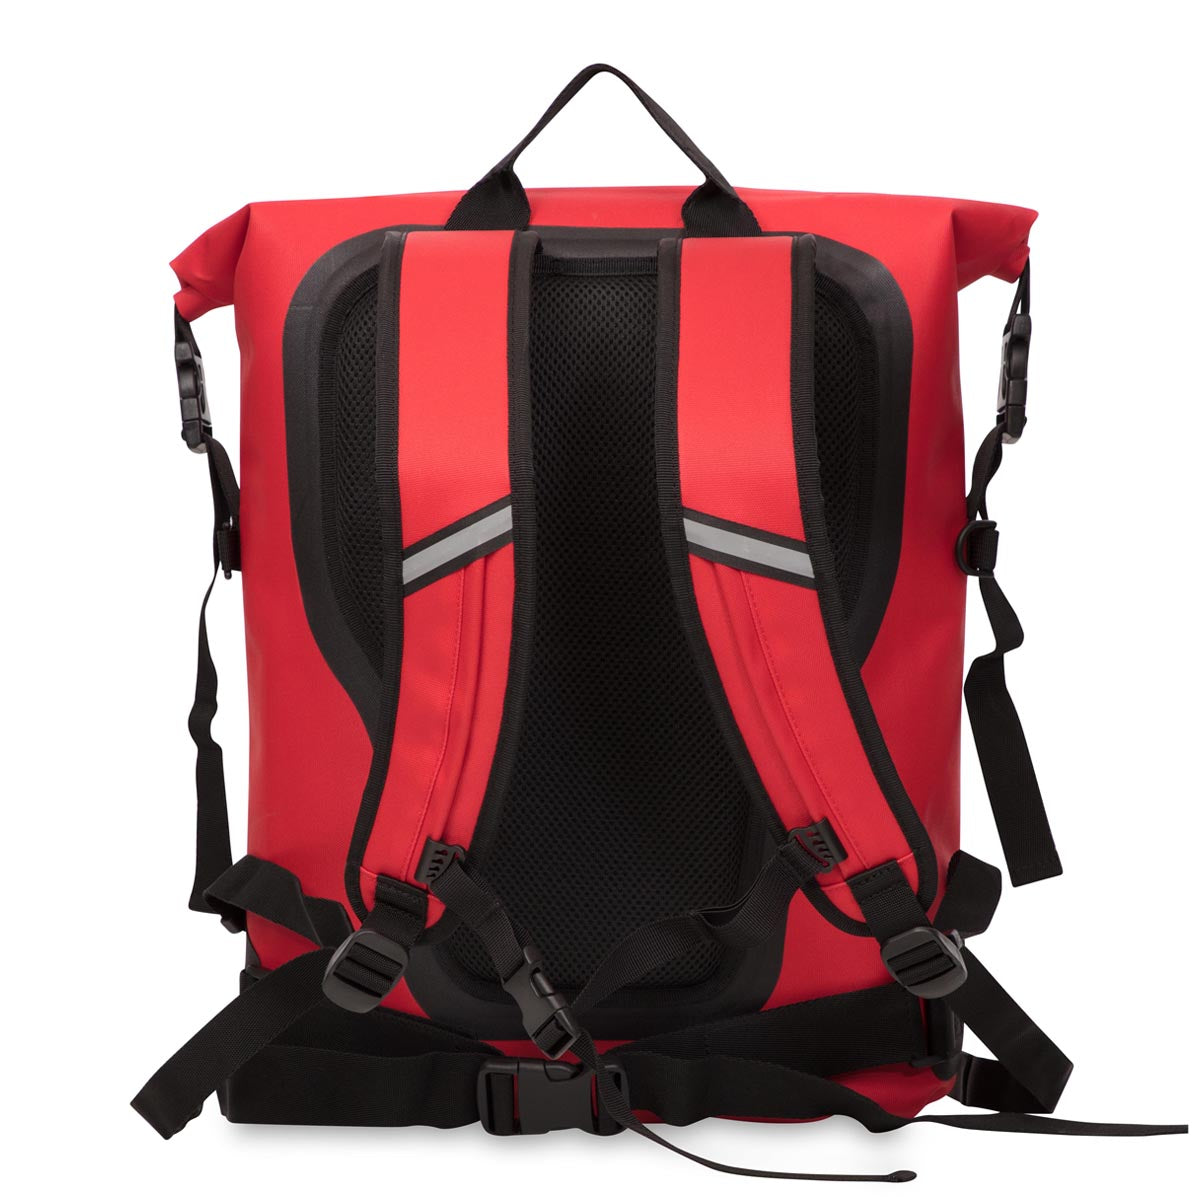 Roll-Top Laptop Backpack - 15""